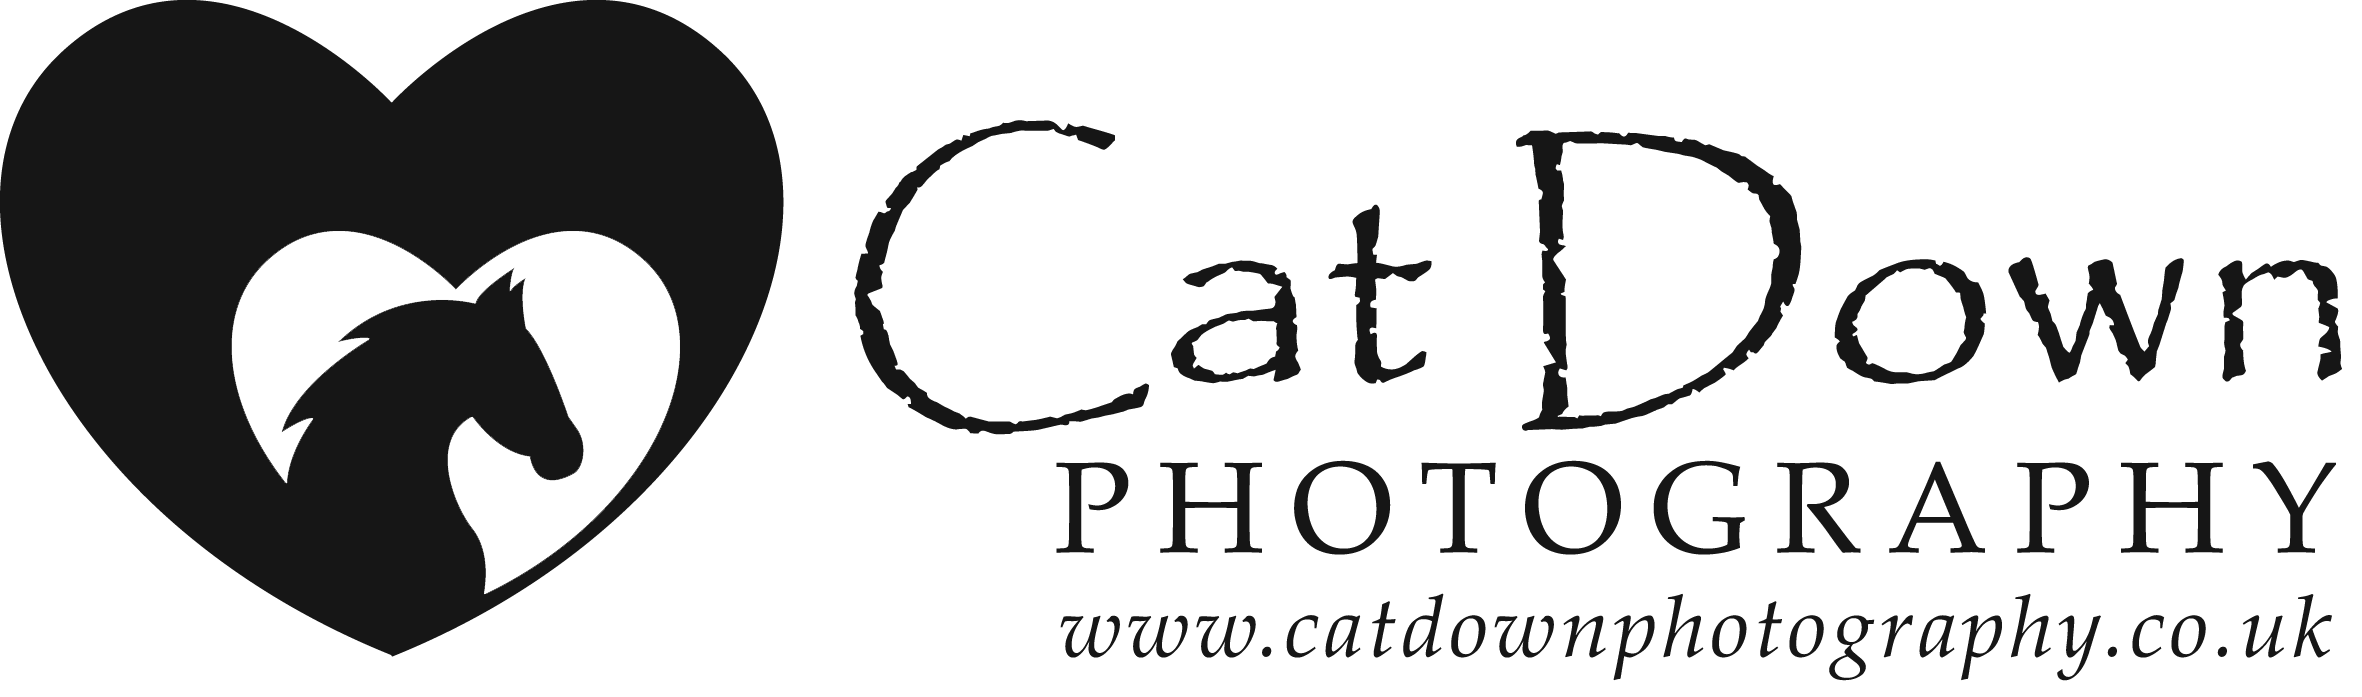 Link image of Cat Down Photography logo